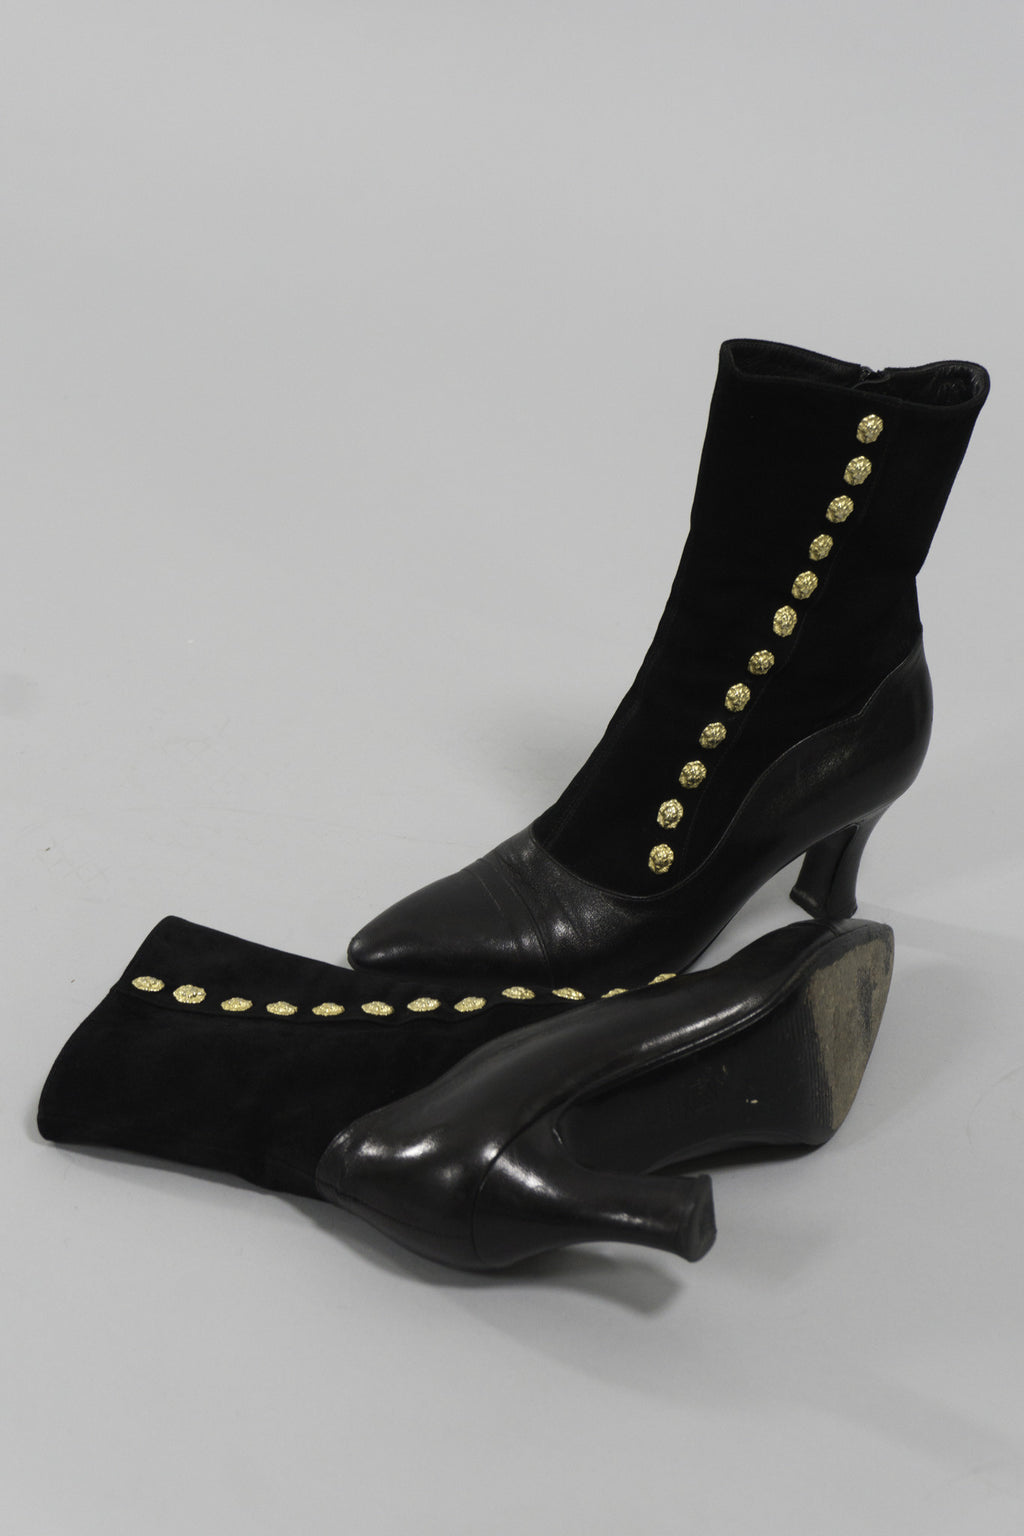 Versus Gianni Versace lion ankle boots